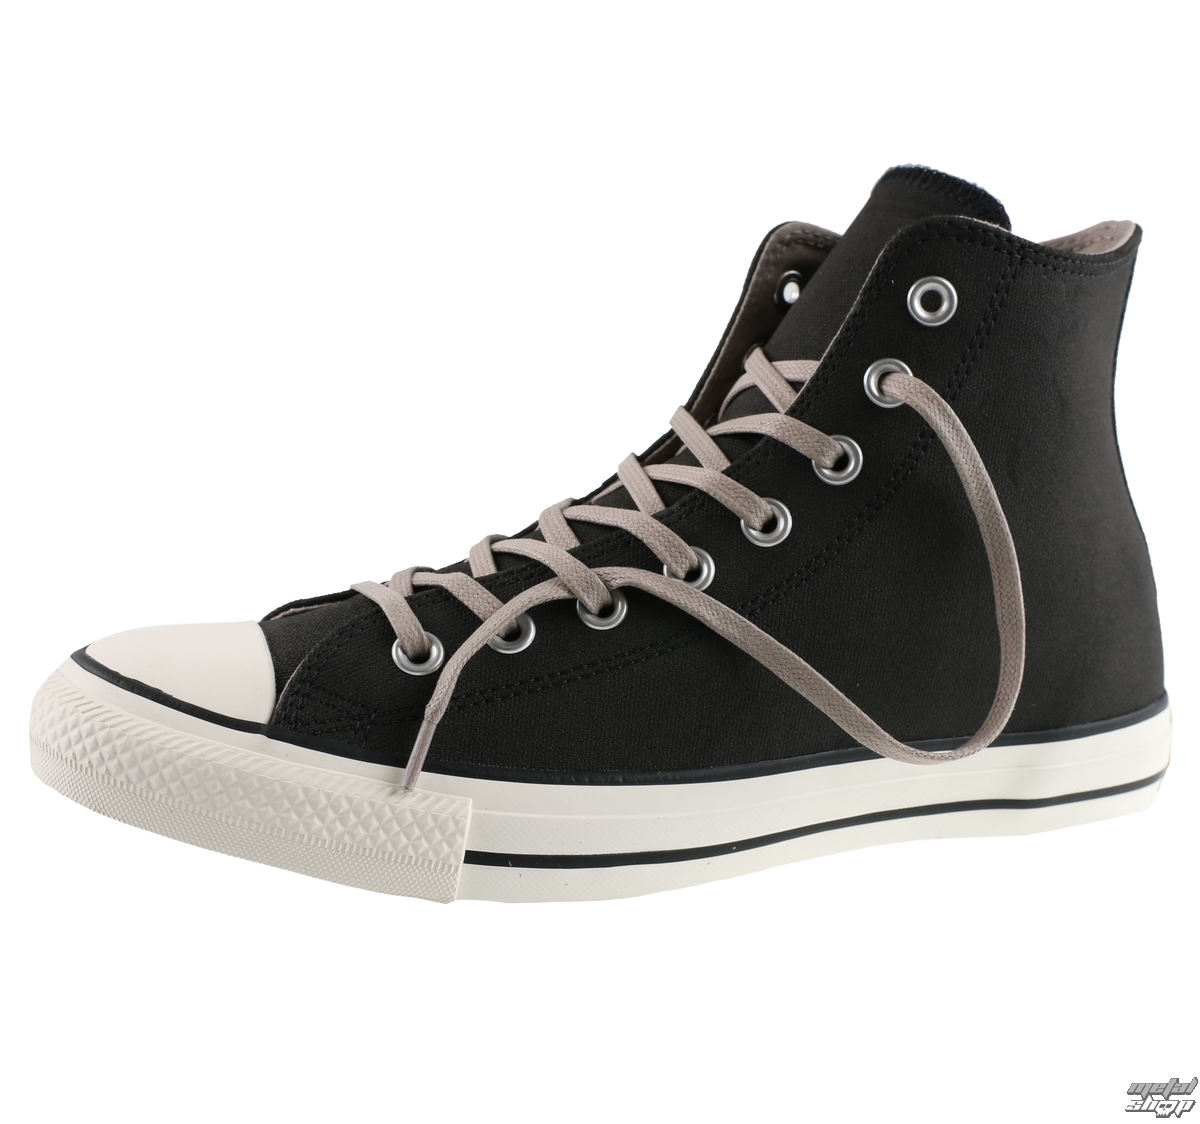 topánky CONVERSE - Chuck Taylor All Star - C157447